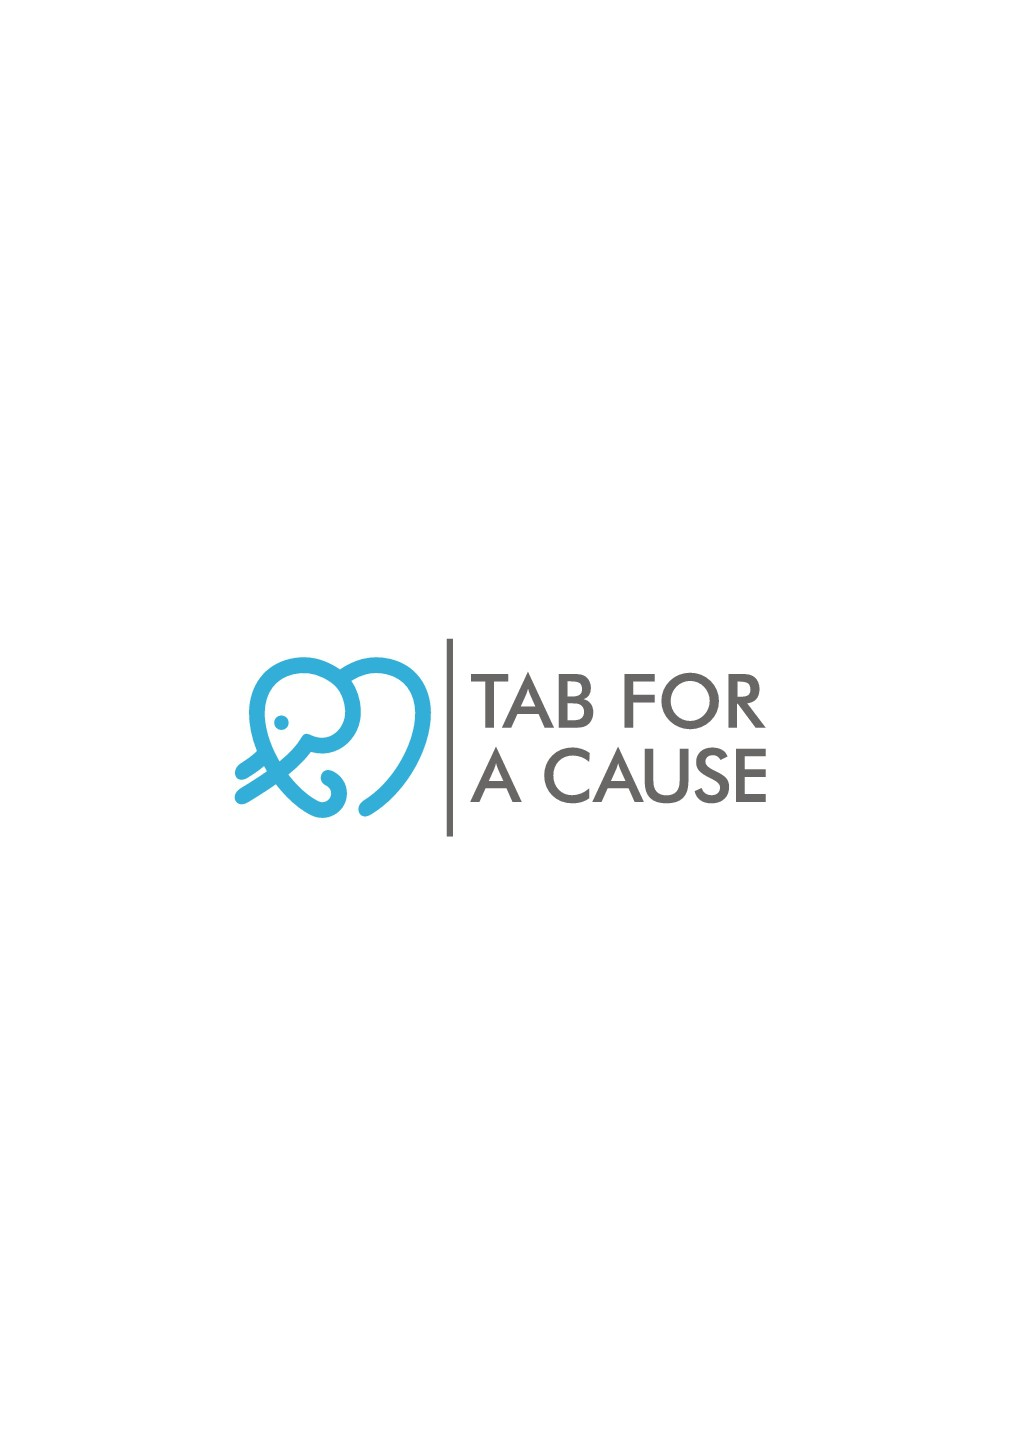 Create a logo for a browser app that raises money for charity!